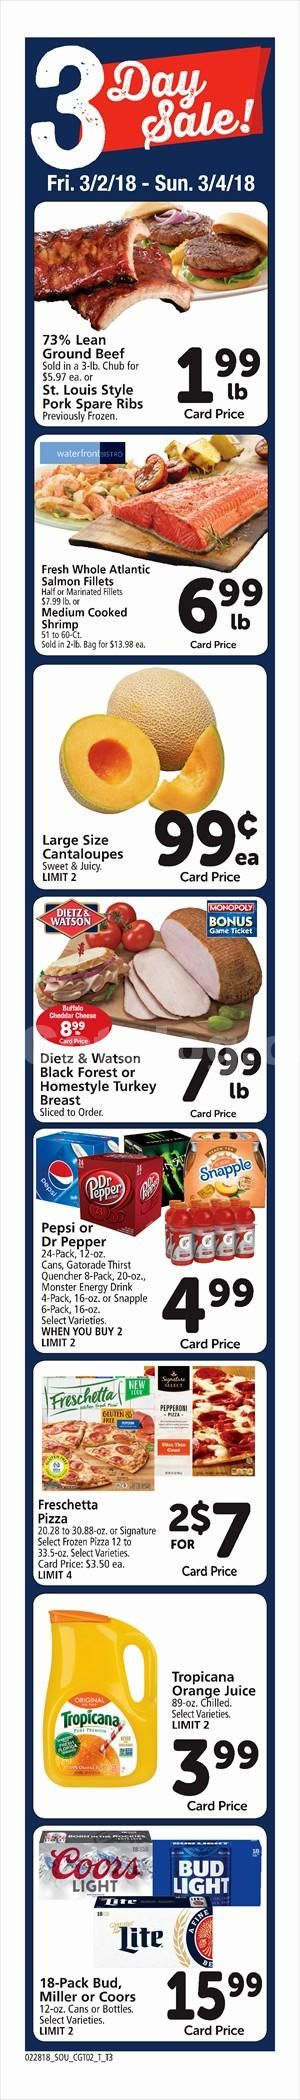 Tom Thumb 3 Day Sale March 2 – 4, 2018 – Tom Thumb weekly circular comes on the scene almost weekly but sometimes people see the Tom Thumb ad and they are generally quick to throw it out. Checking the ads every single week and clipping out your coupons that will inside weekly circular can actually be an extremely rewarding experience. Tom Thumb regularly includes coupons which can equate his almost as much as 50% off your purchase. Which means that you could attem